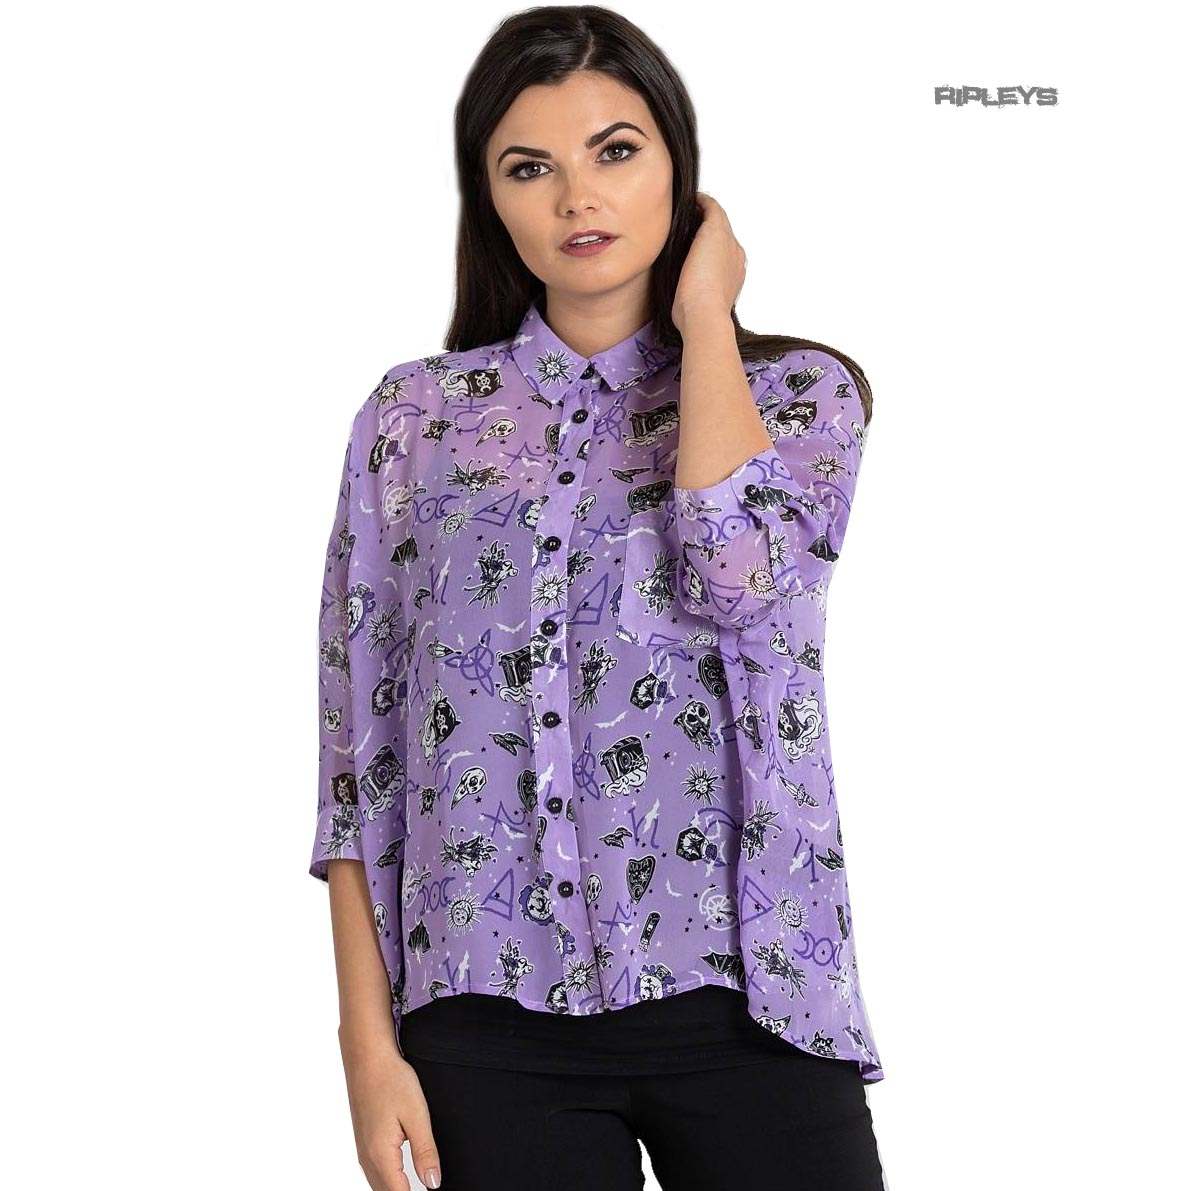 Hell-Bunny-Shirt-Top-Gothic-Witchy-ELSPETH-Lavender-Purple-Blouse-All-Sizes thumbnail 6